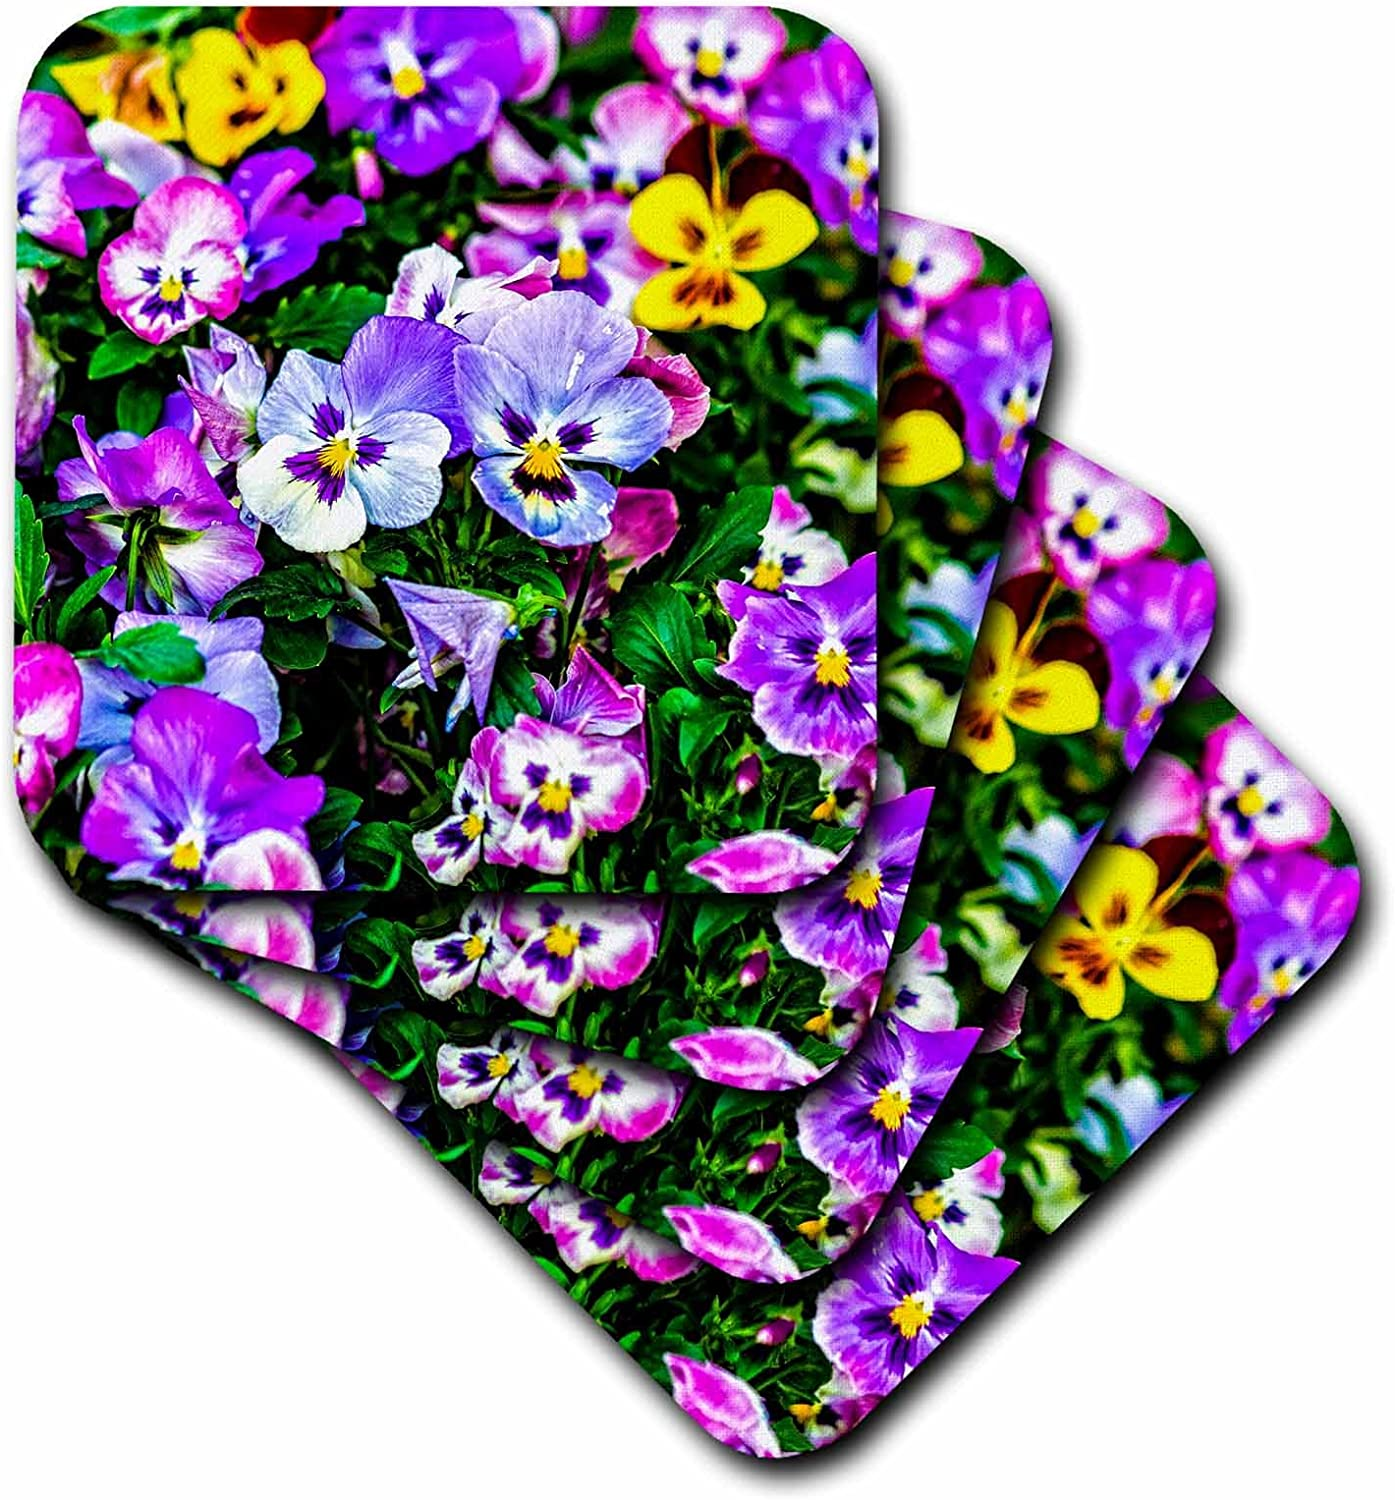 Ceramic Tile Coasters 3dRose cst/_270756/_3 Pansy Flowers On A Flowerbed Set Of 4